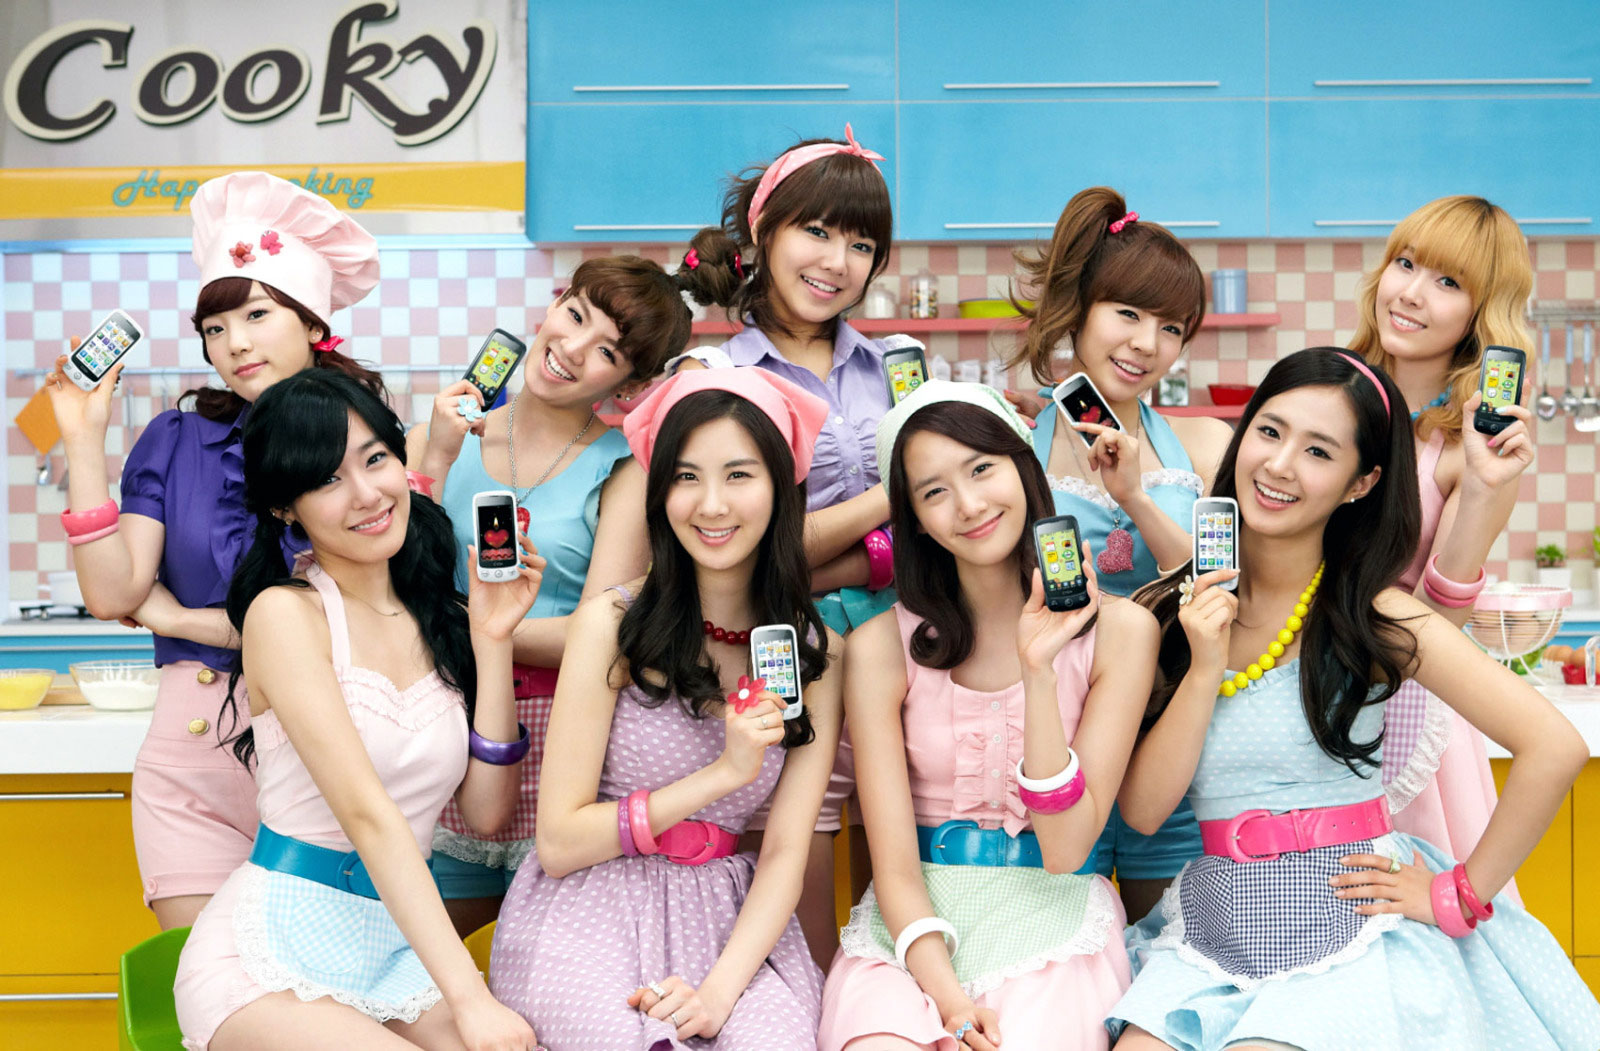 Welcome Foto Snsd, Welcome Gallery Foto Snsd Gallery Foto Snsd Wallpaper